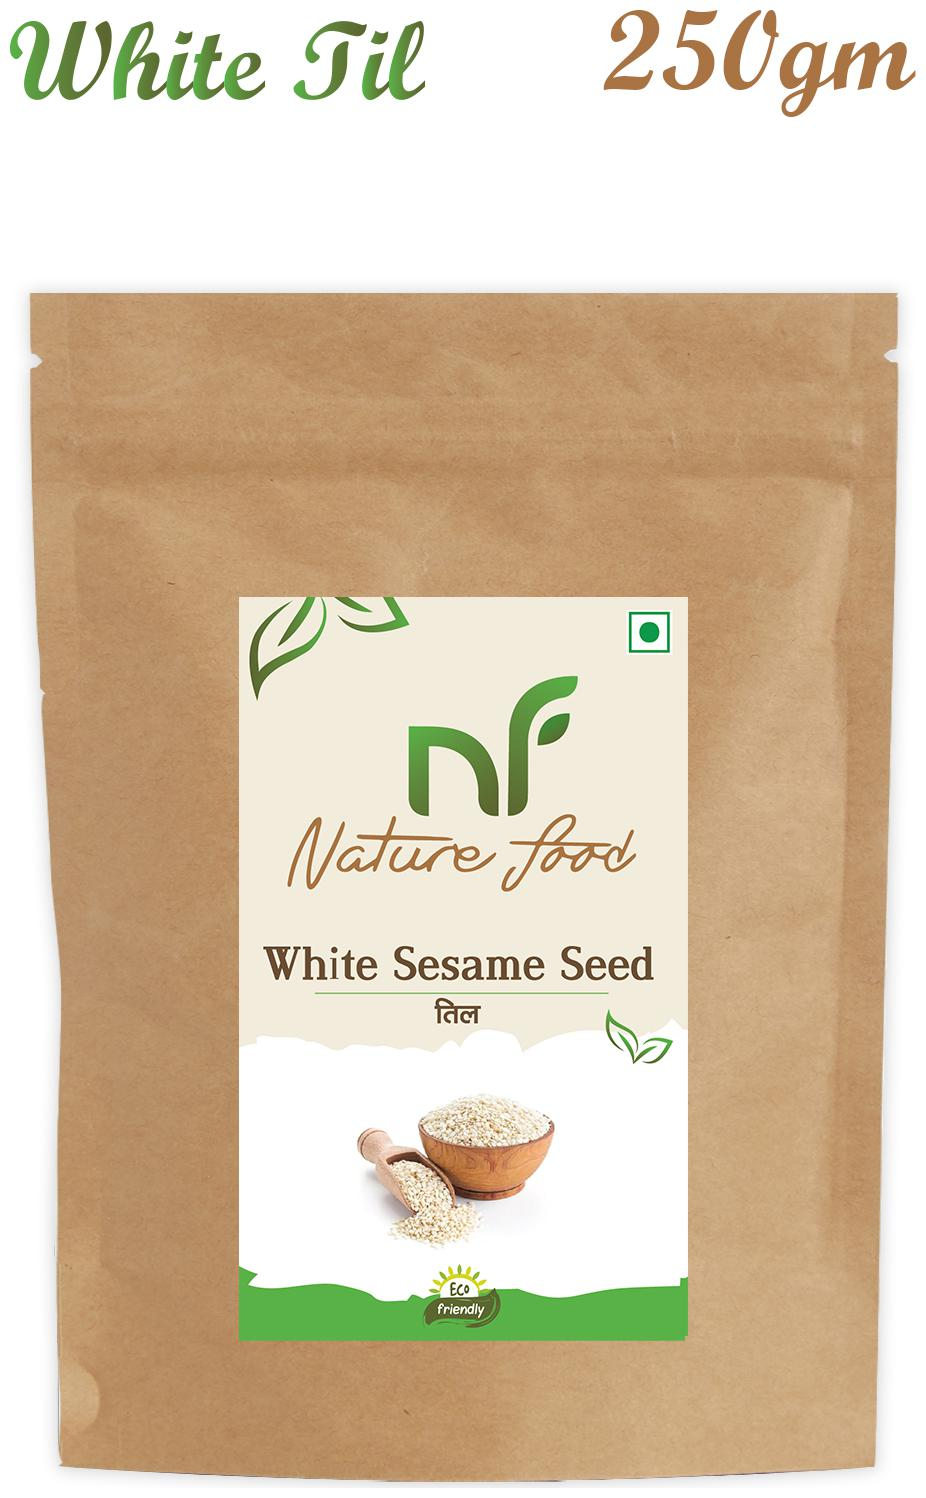 https://assetscdn1.paytm.com/images/catalog/product/F/FA/FASNATURE-FOOD-ANNP11647901D1BC254/1620024341266_0..jpg